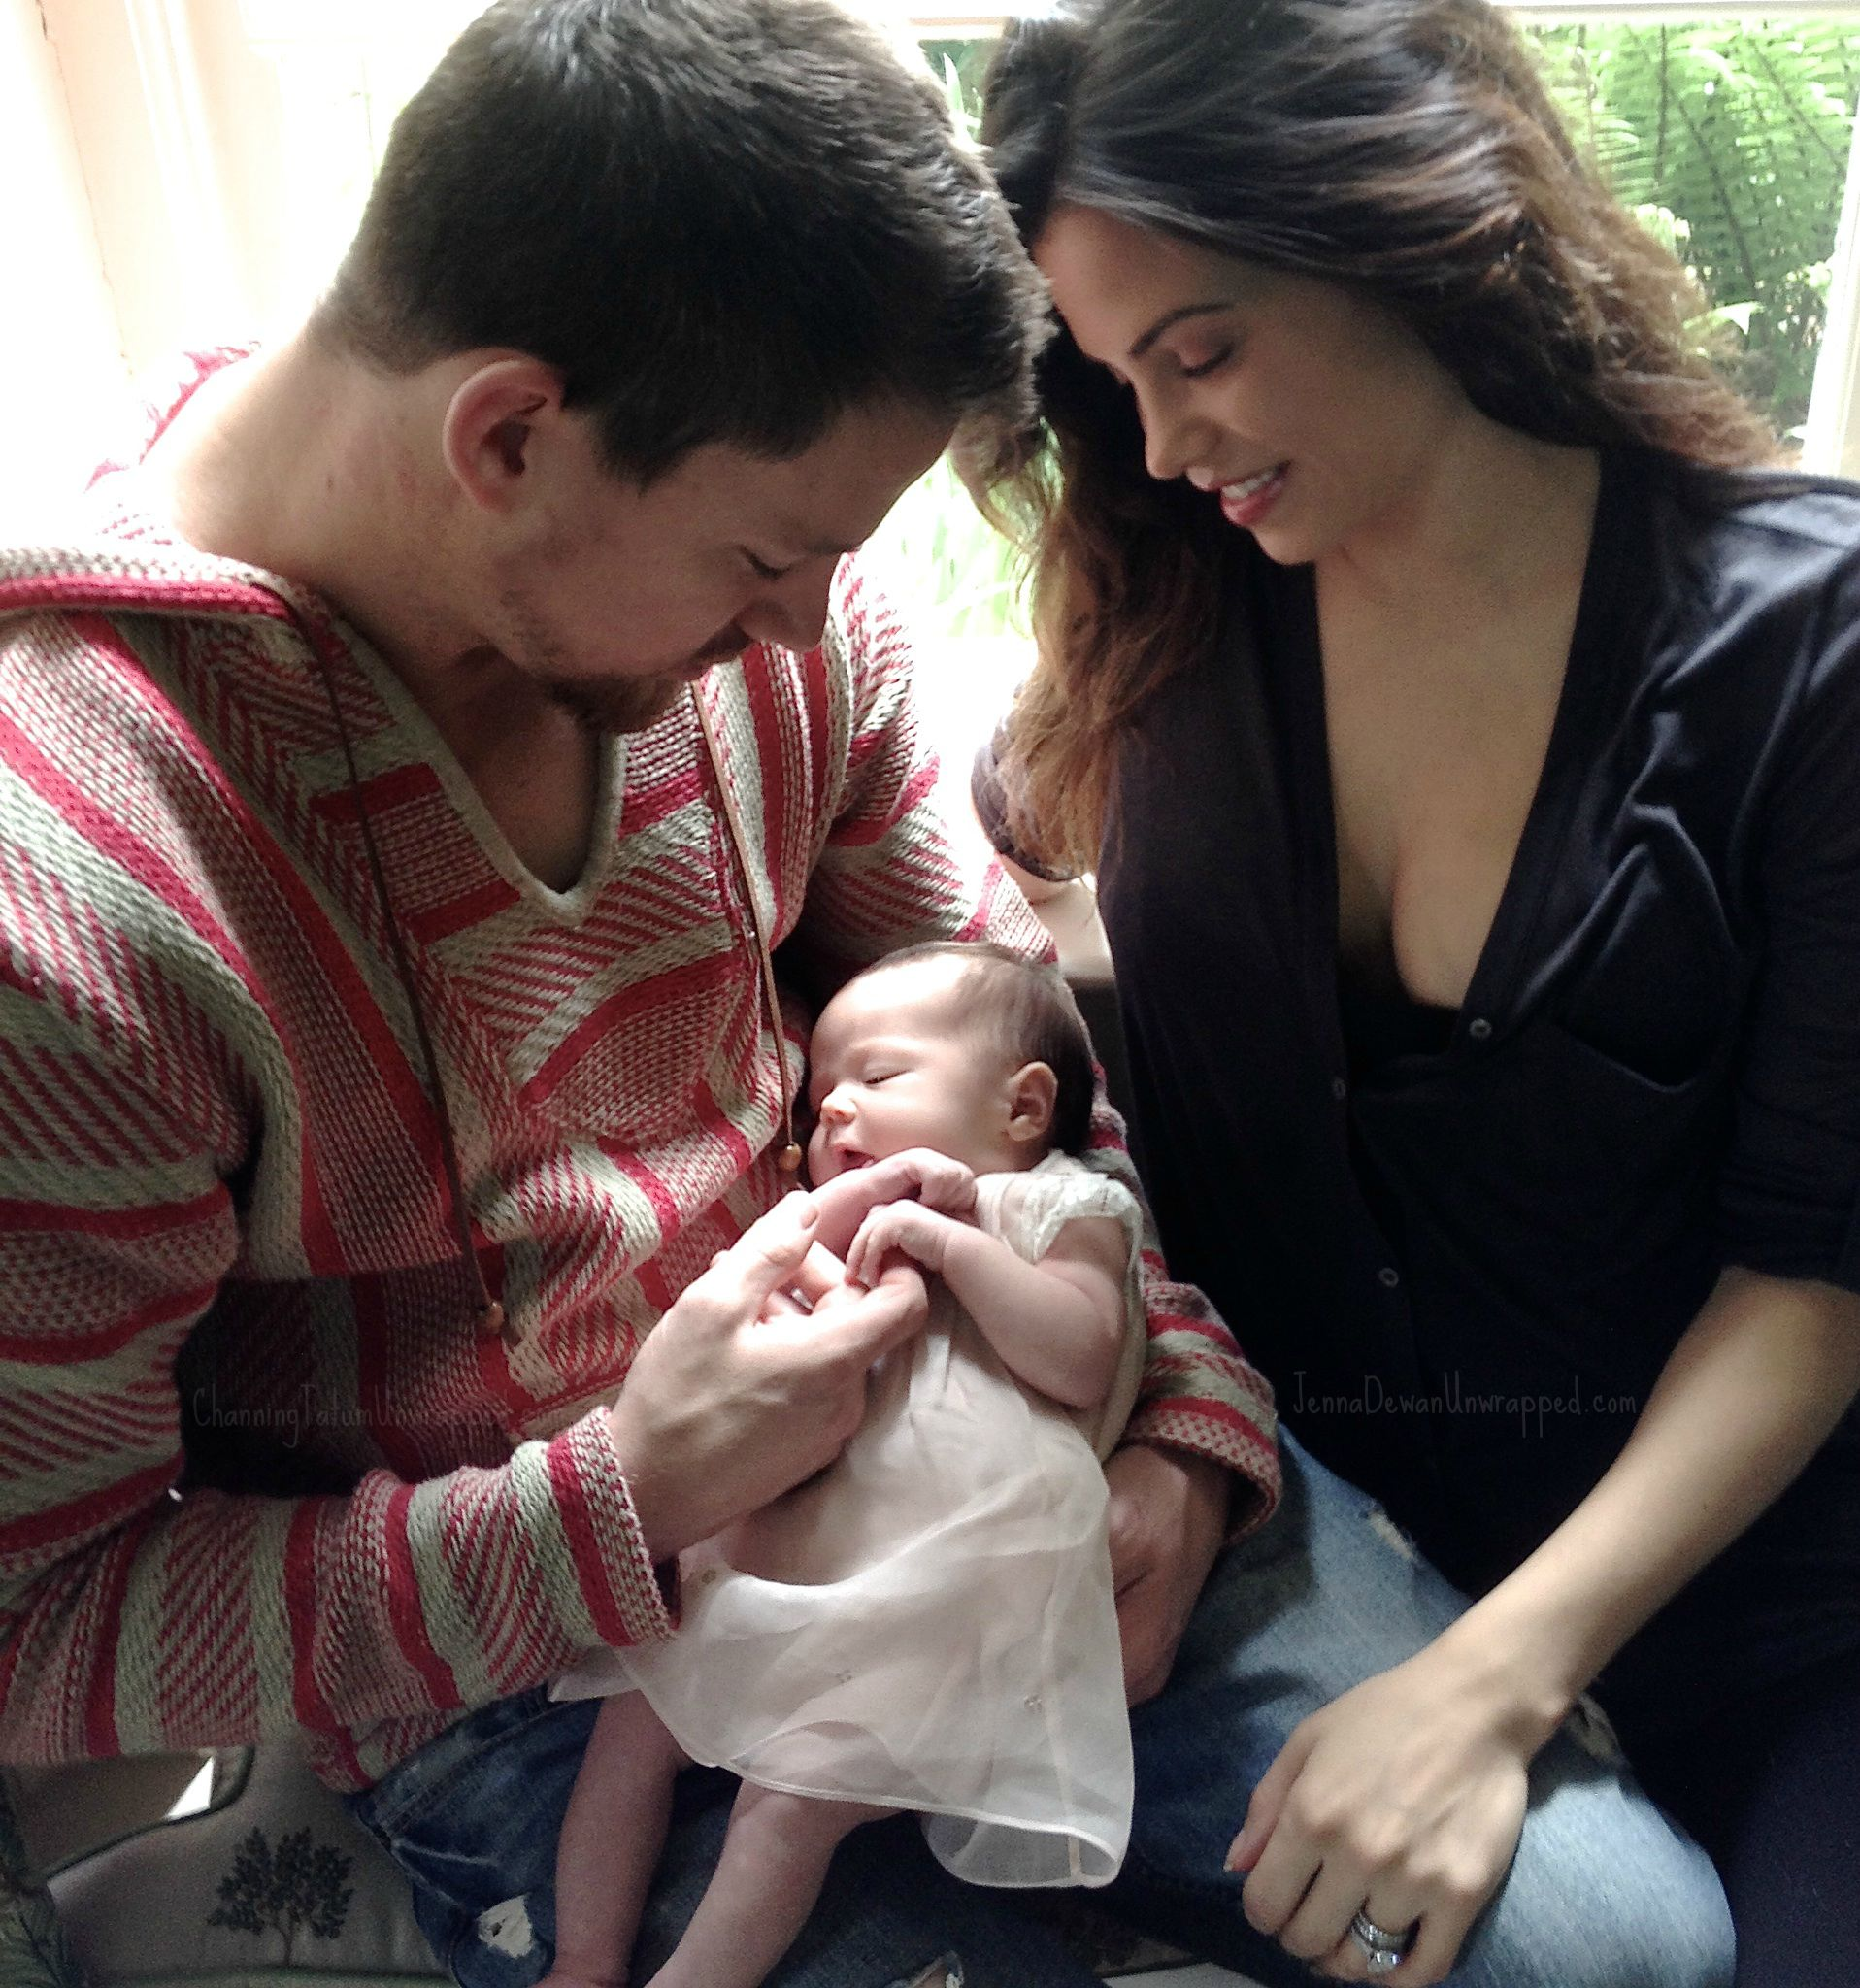 Tatum pictures channing baby